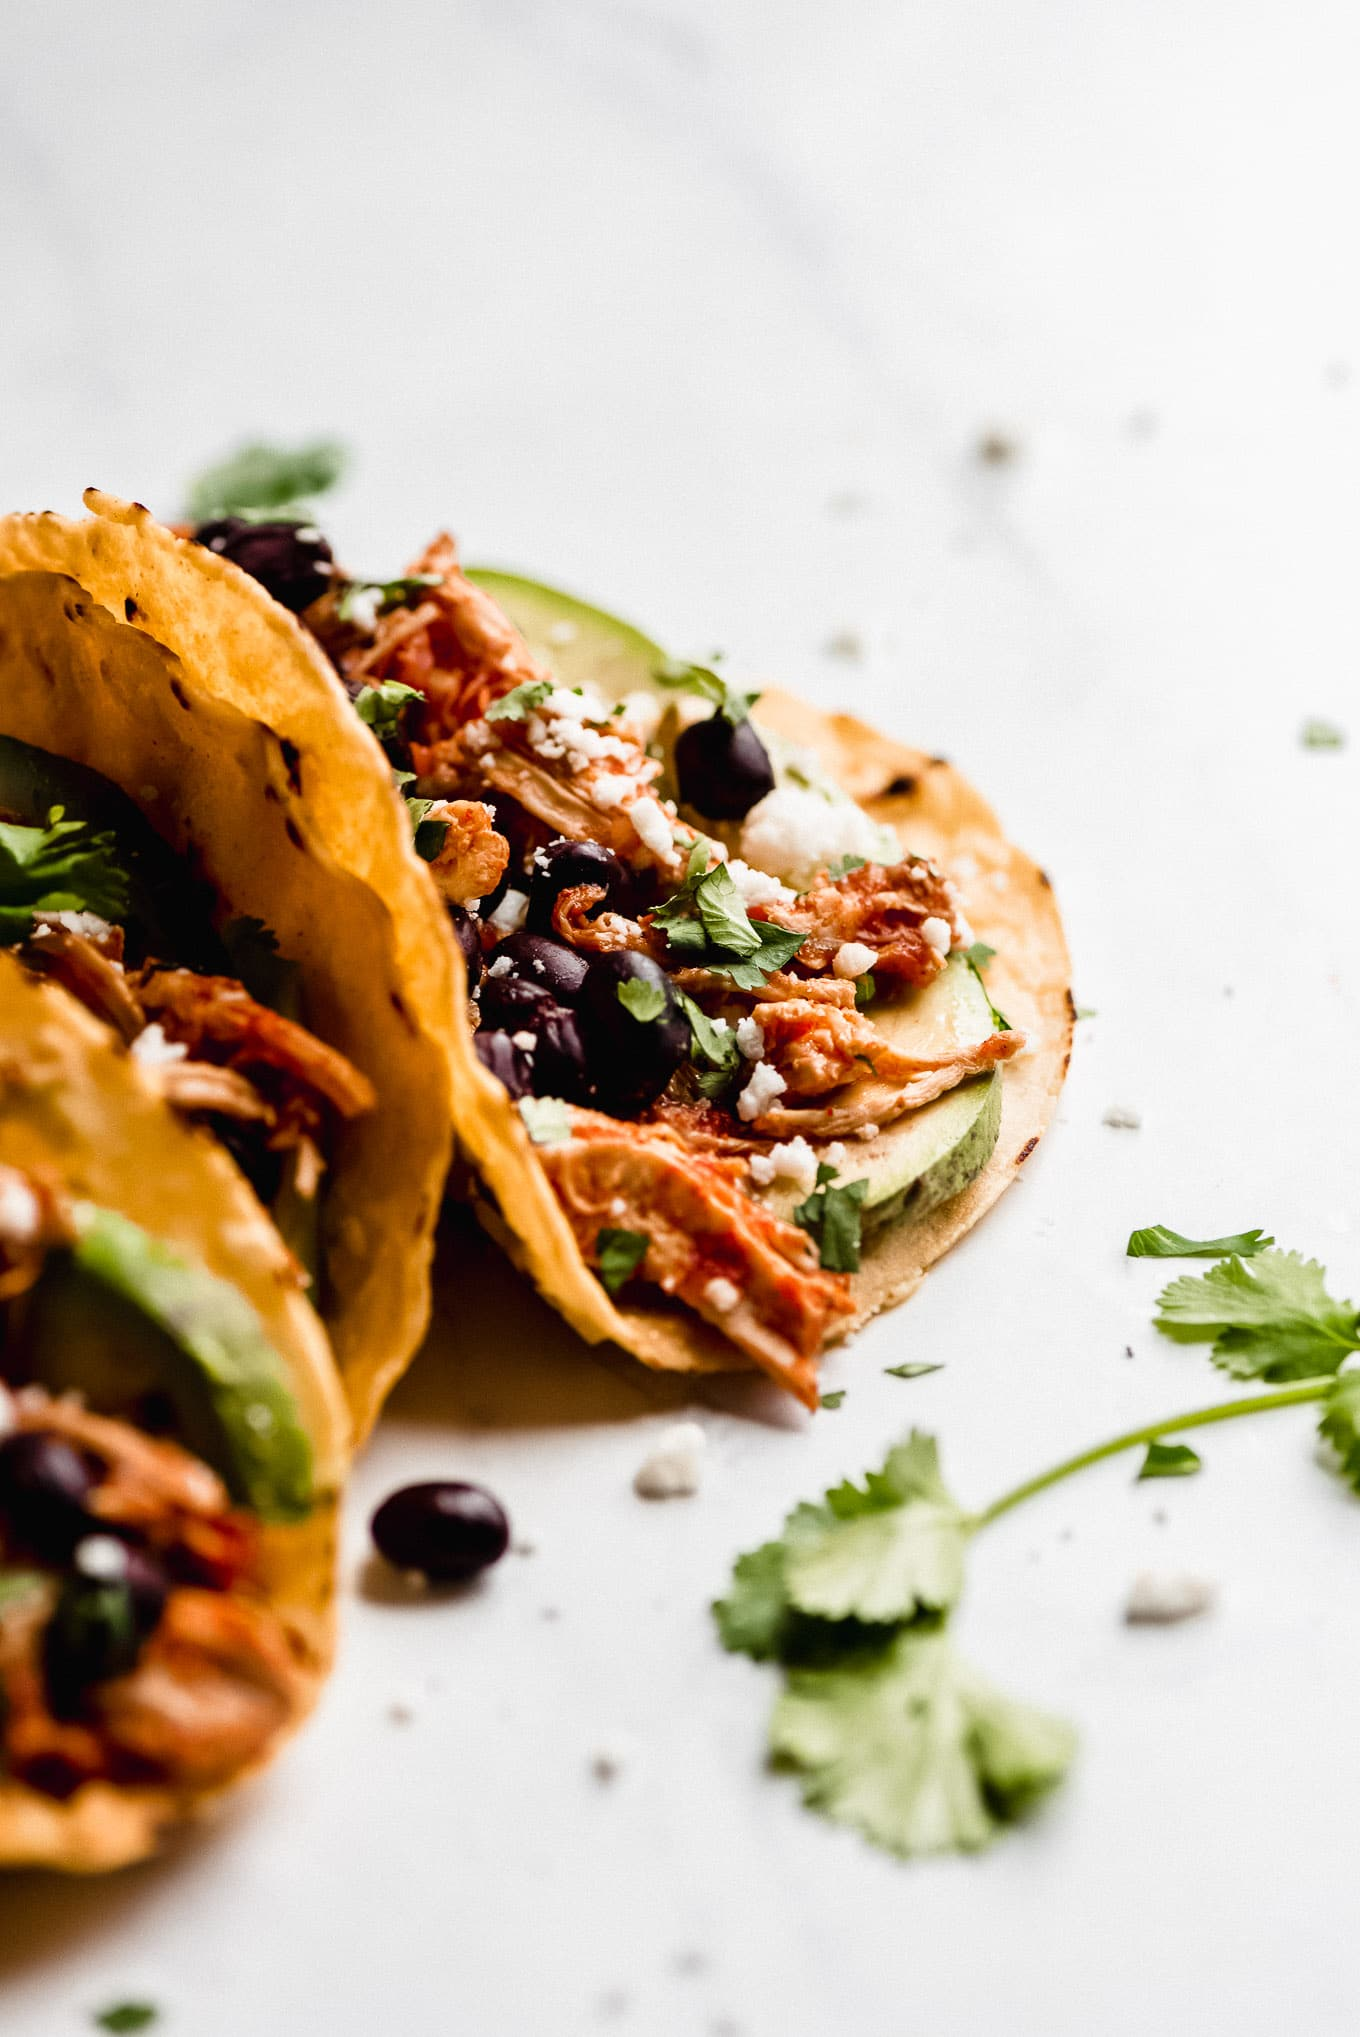 Salsa Chicken Taco in a corn tortilla shell with black beans, avocados, Queso fresco, and cilantro.